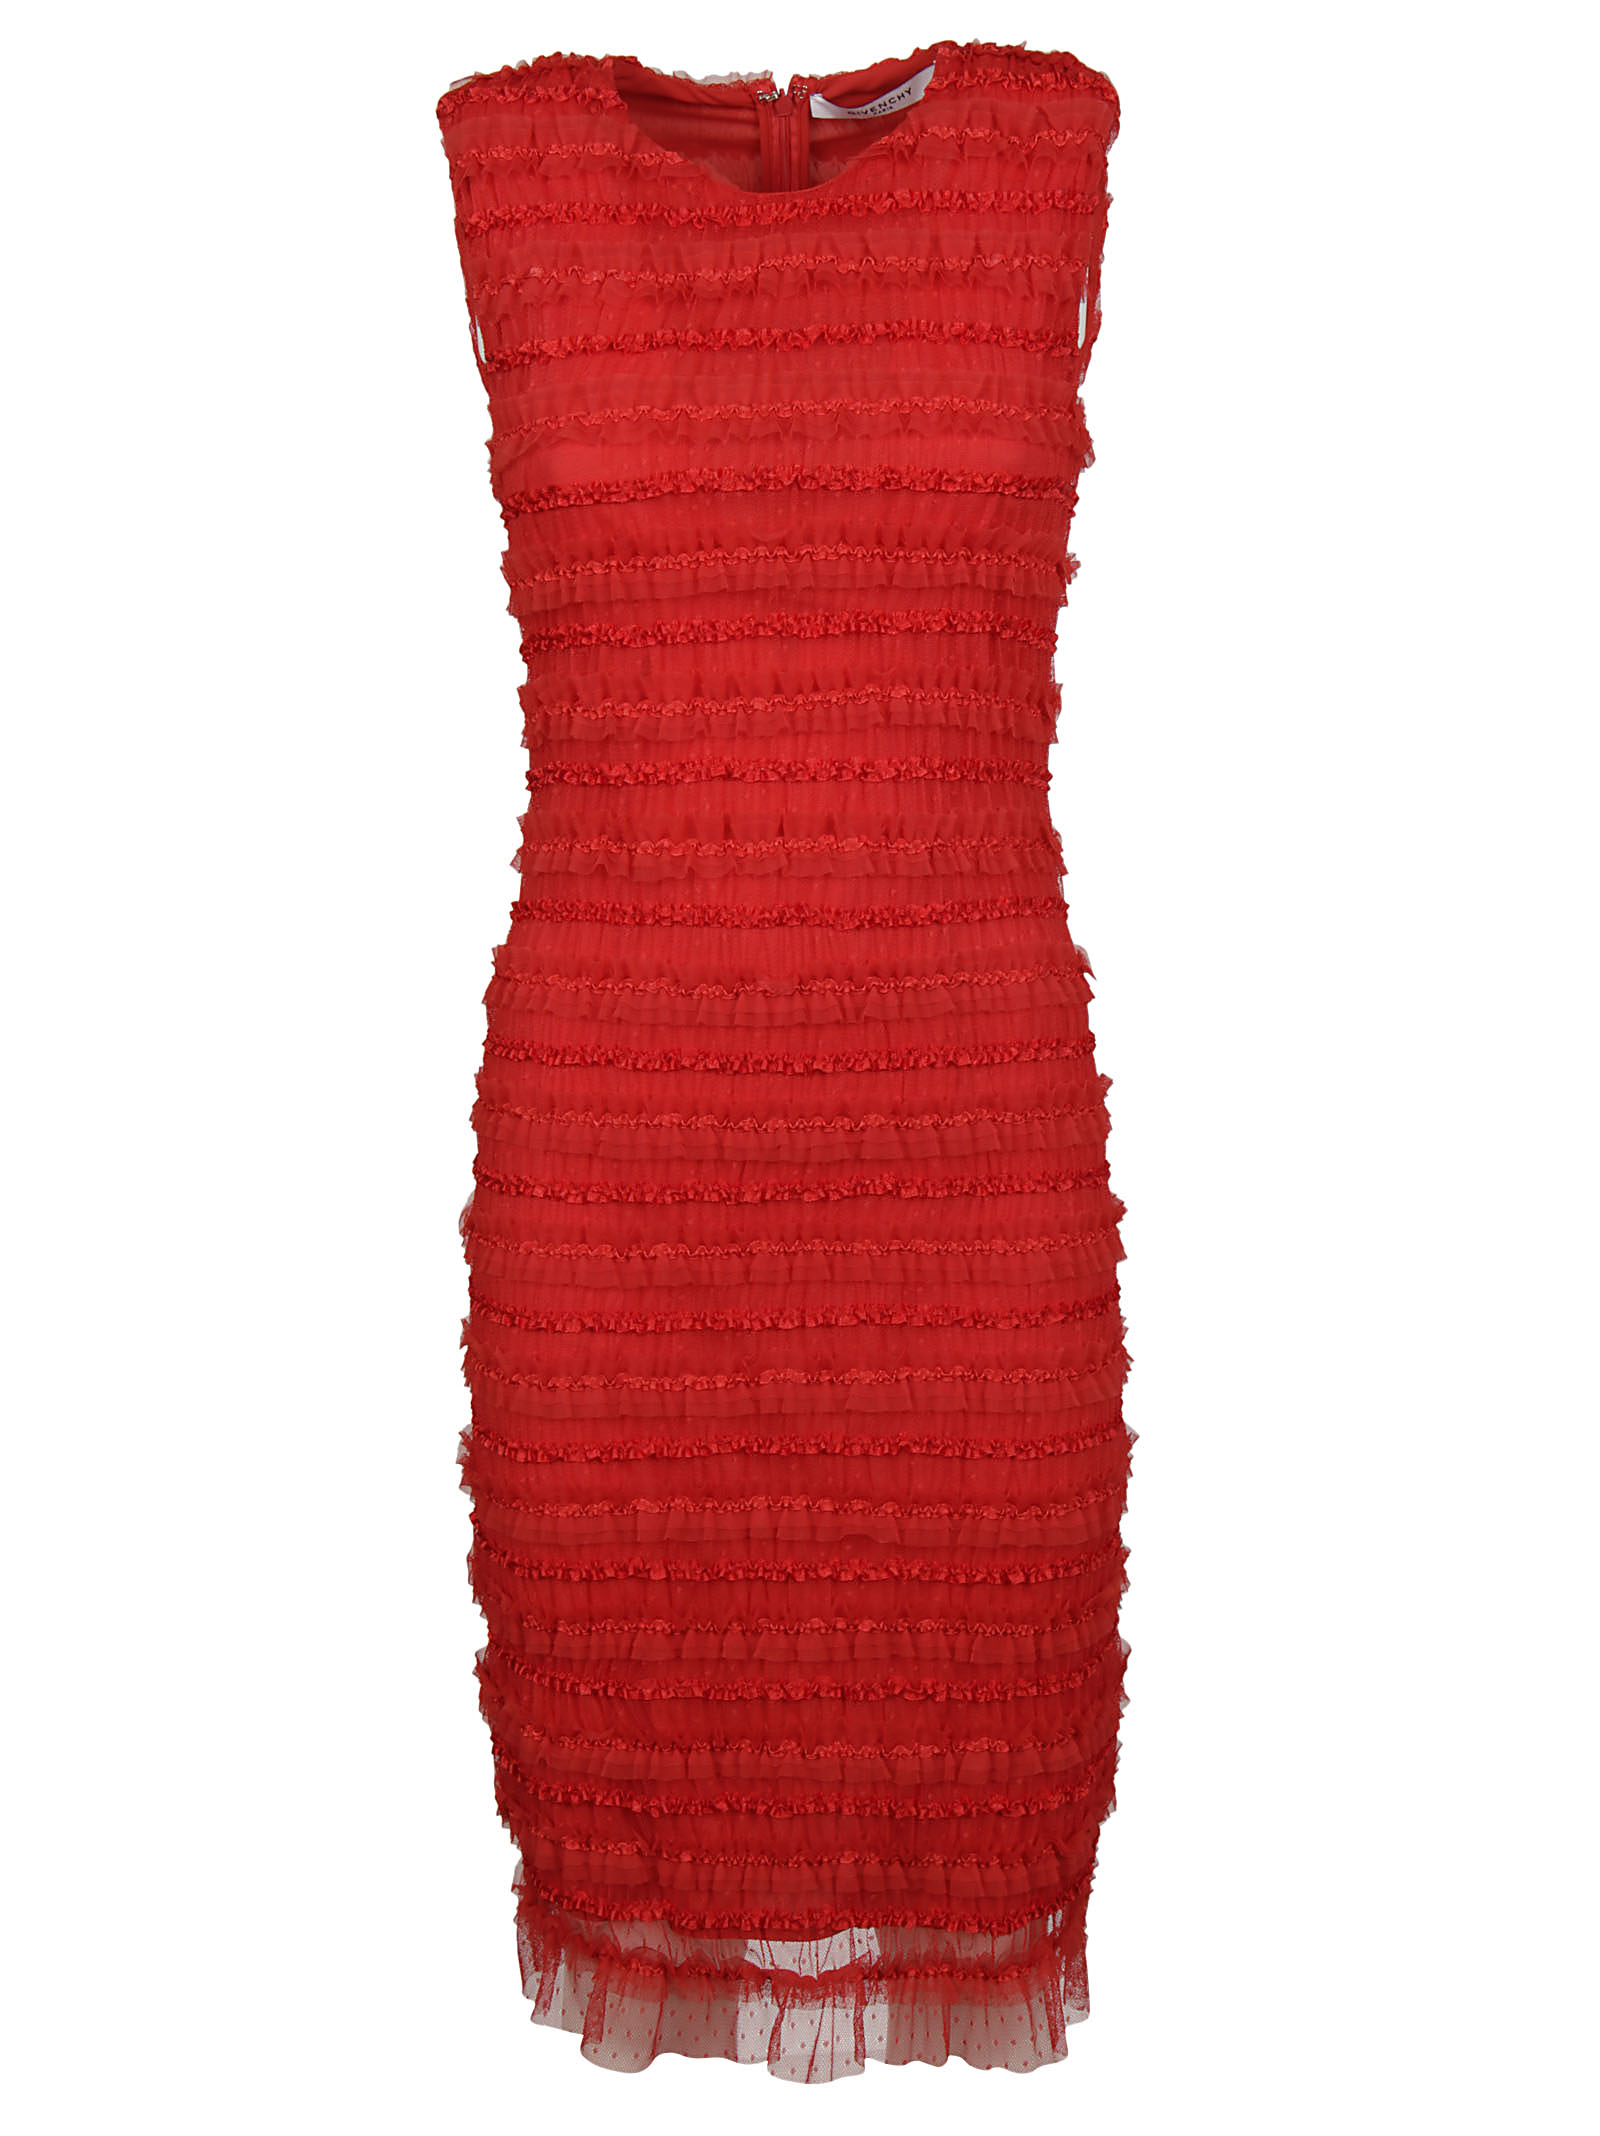 Givenchy Givenchy Ruffle Embellished Pencil Dress